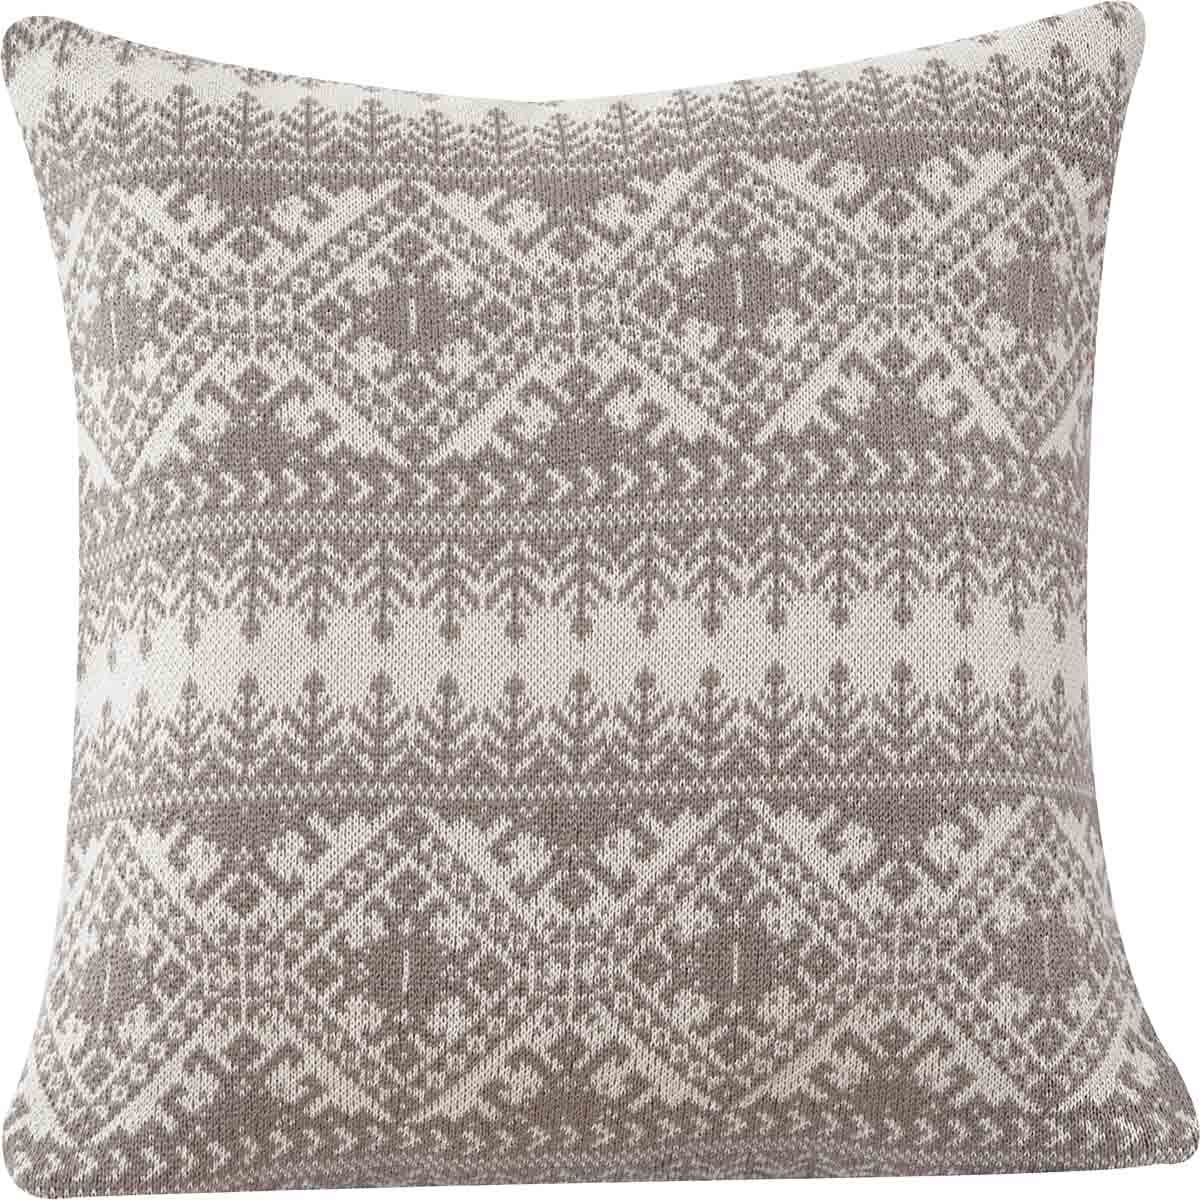 Tribal Knit Euro Sham